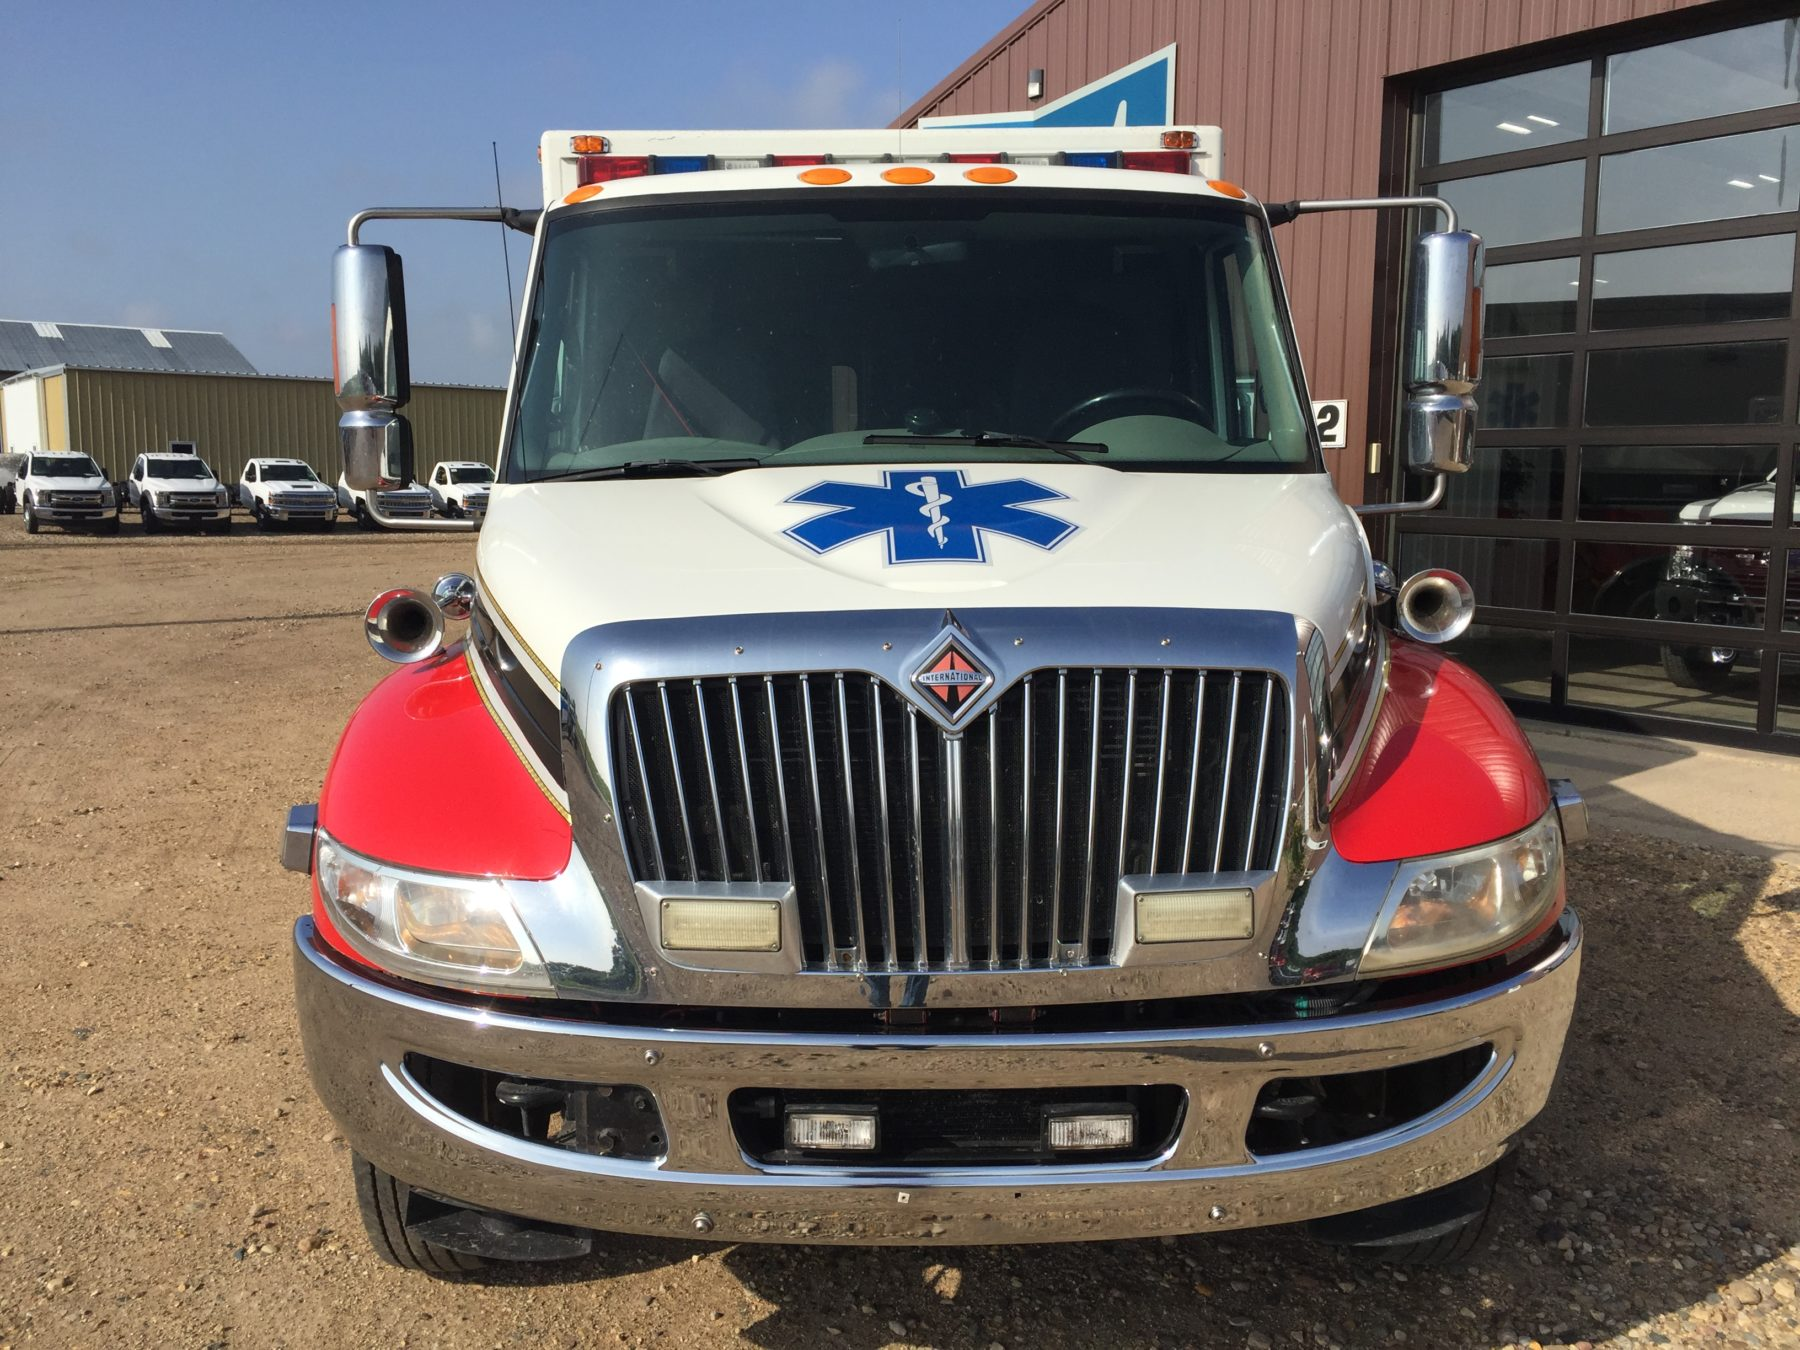 2009 International 4300 Heavy Duty Ambulance For Sale – Picture 7